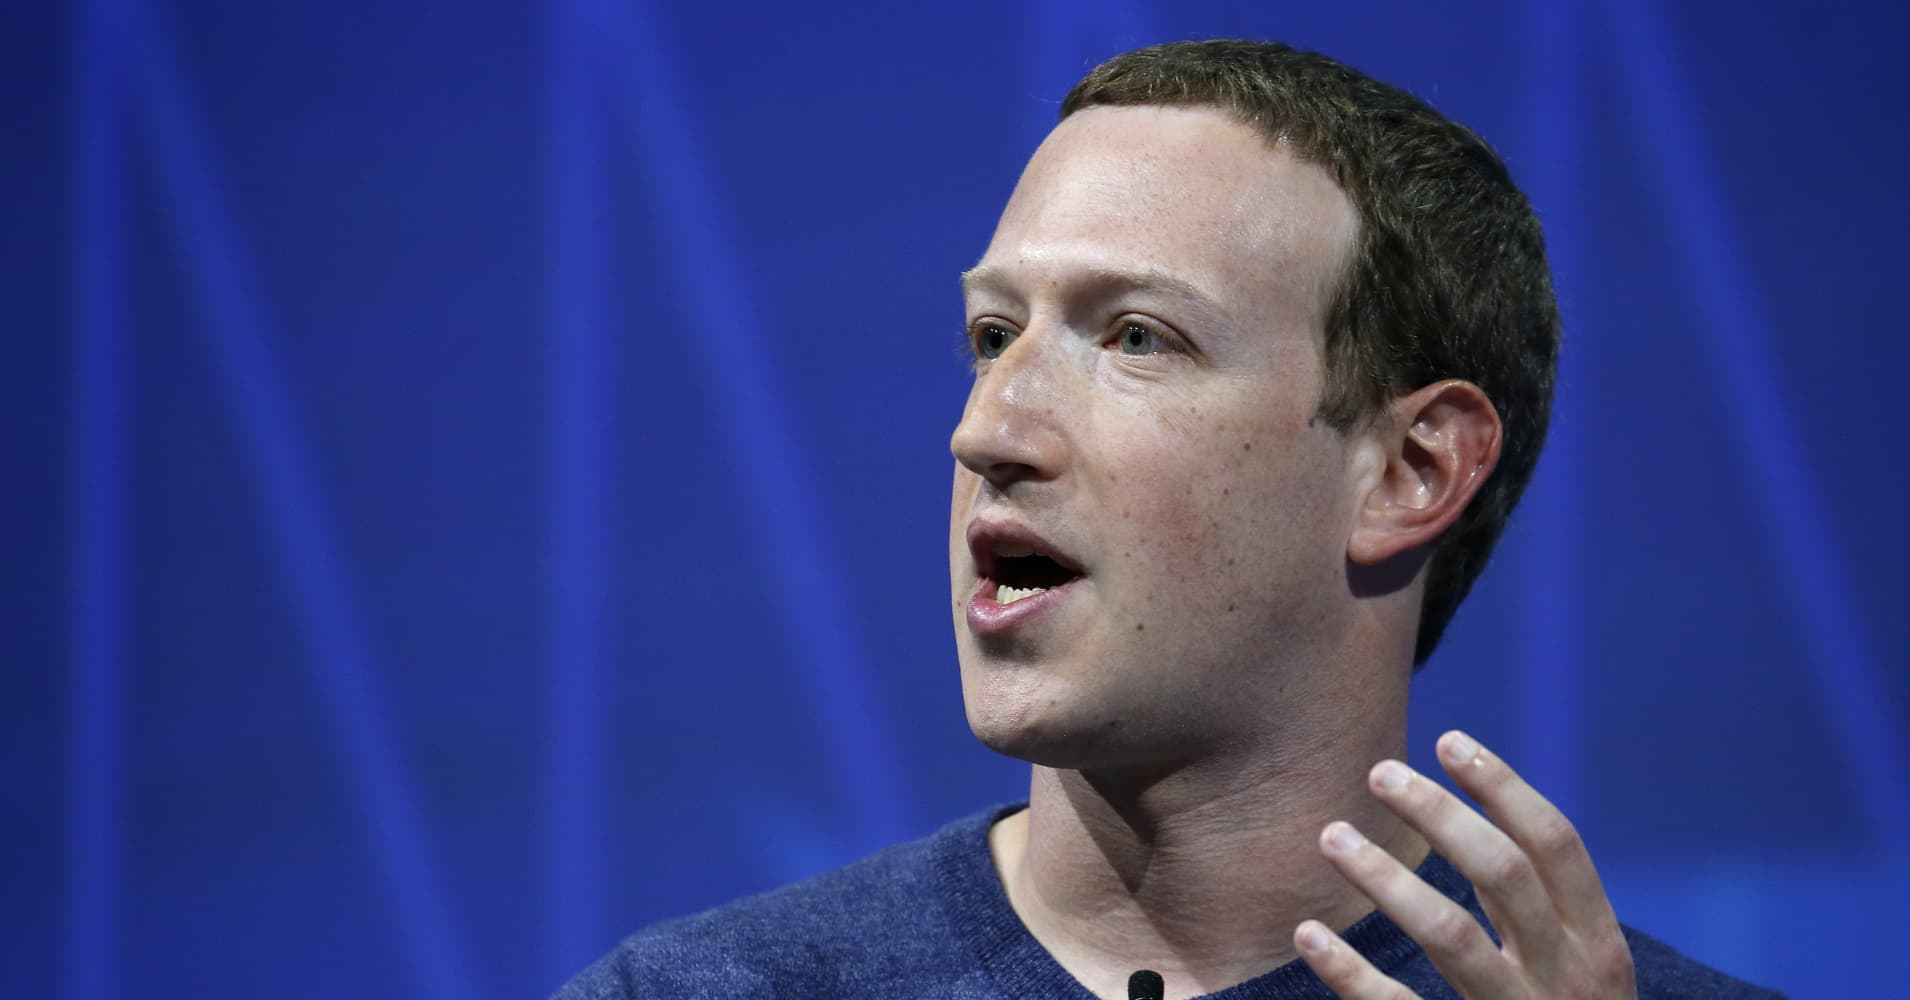 Facebook's Zuckerberg to meet with UK culture minister to discuss regulation